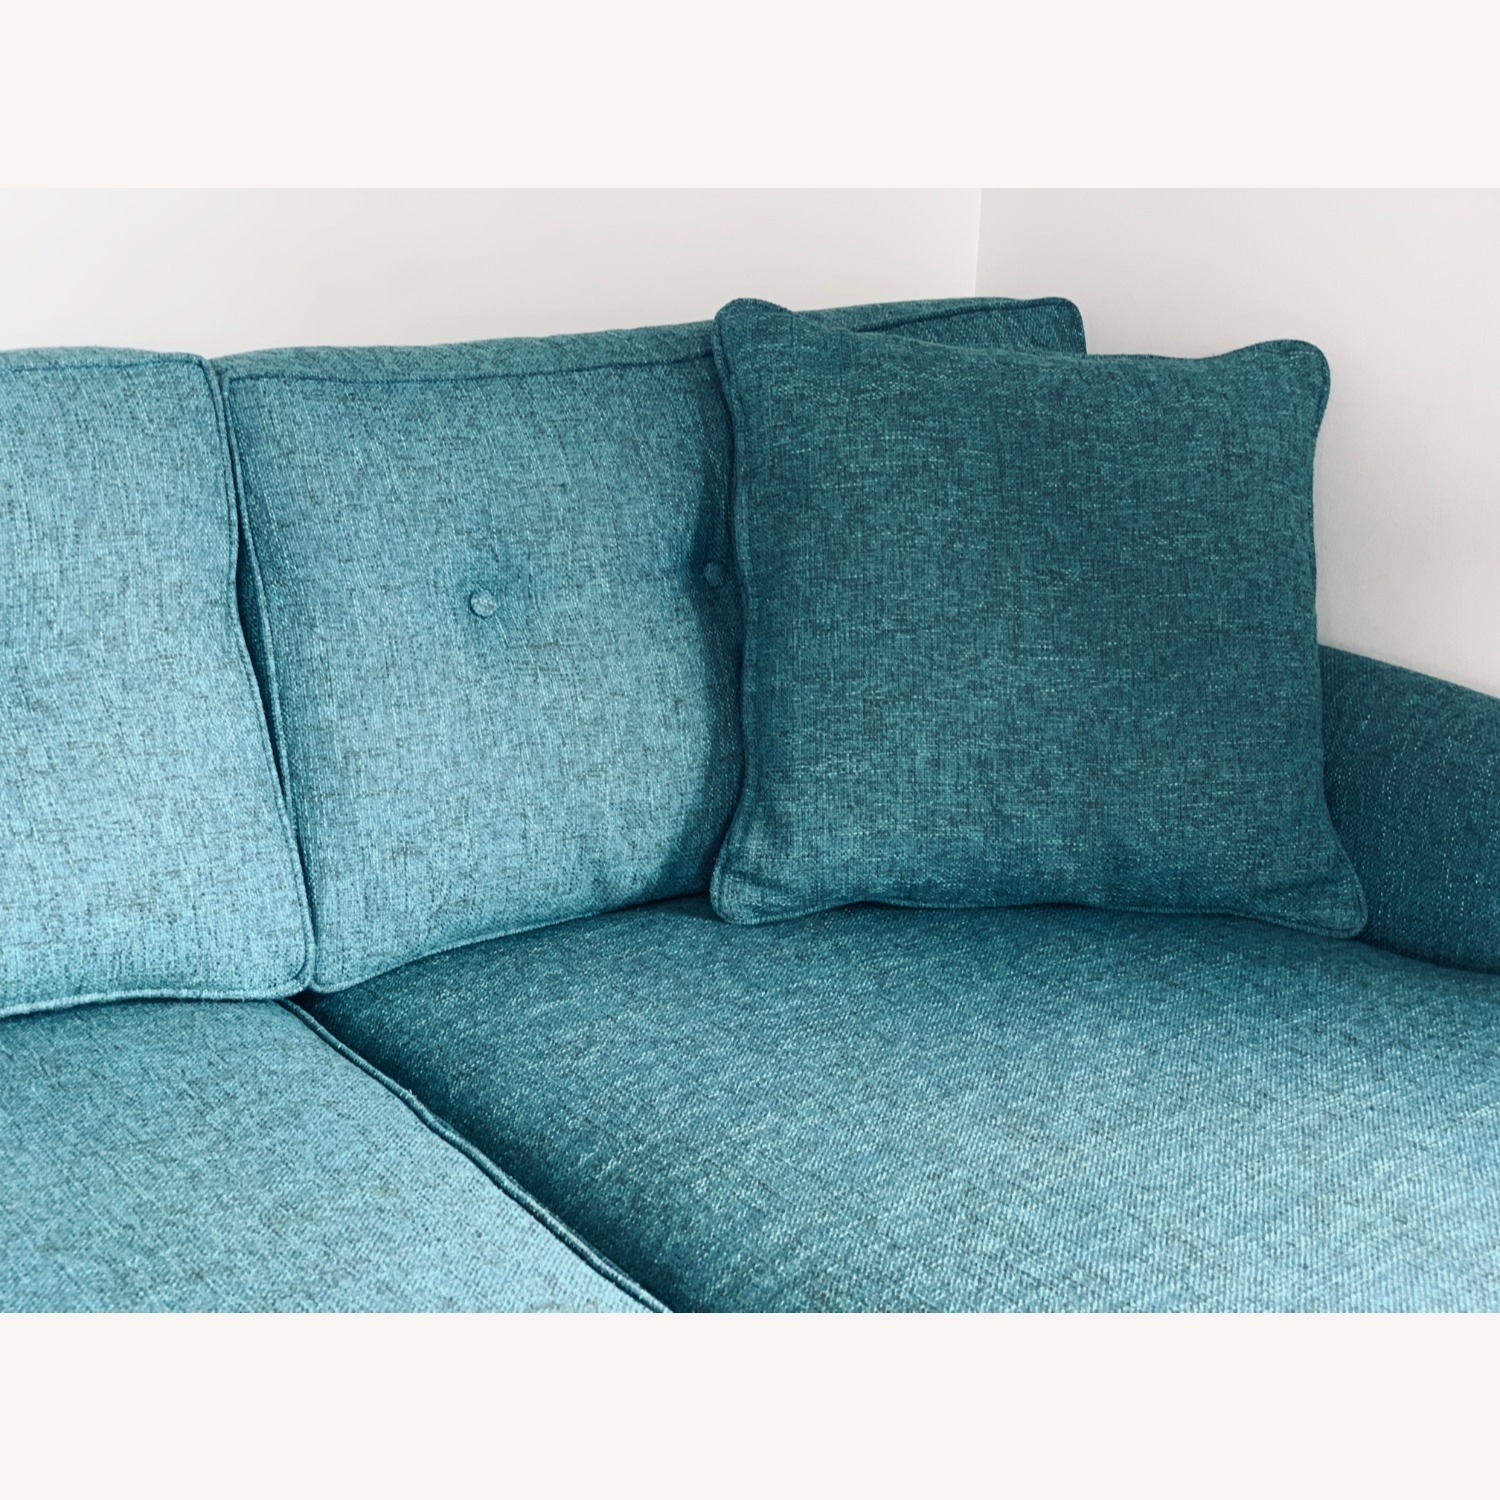 Trendy 2-Piece Sectional Sofa - image-6